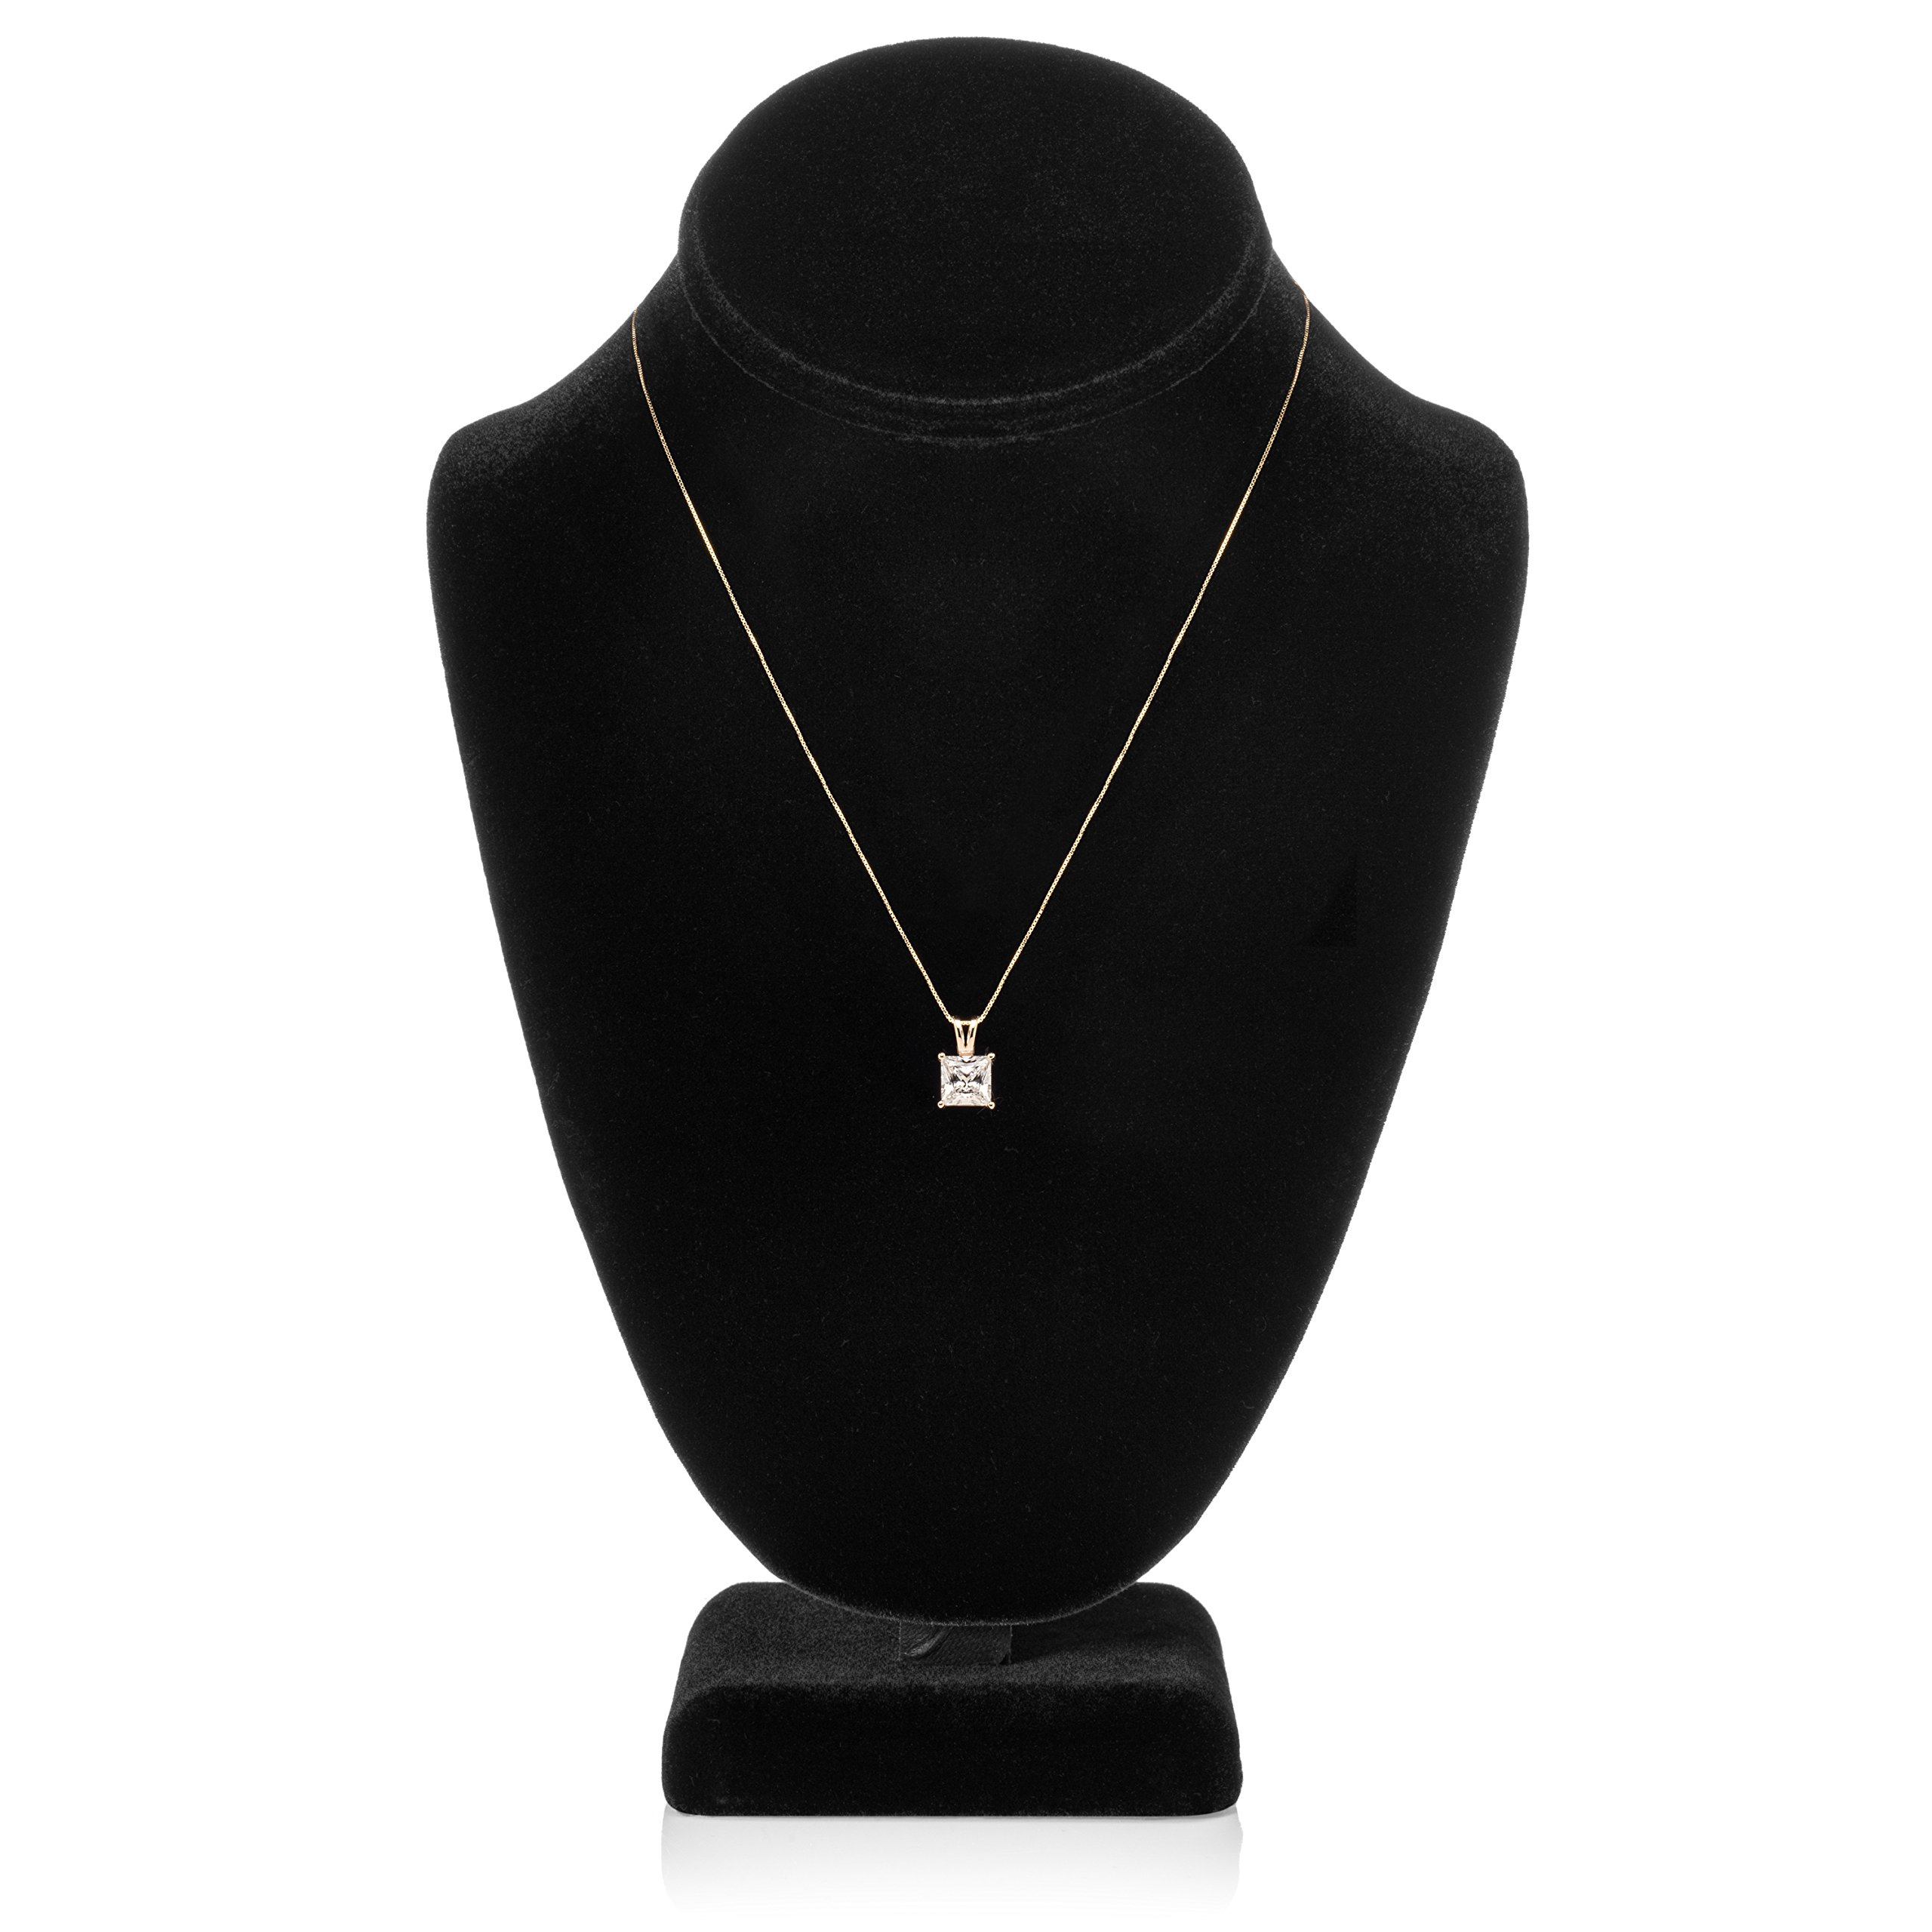 14K Solid Yellow Gold Princess Cut Cubic Zirconia Solitaire Pendant Necklace (2 Carat), 16 inch .50mm Box Link Chain, Gift Box by Everyday Elegance Jewelry (Image #5)